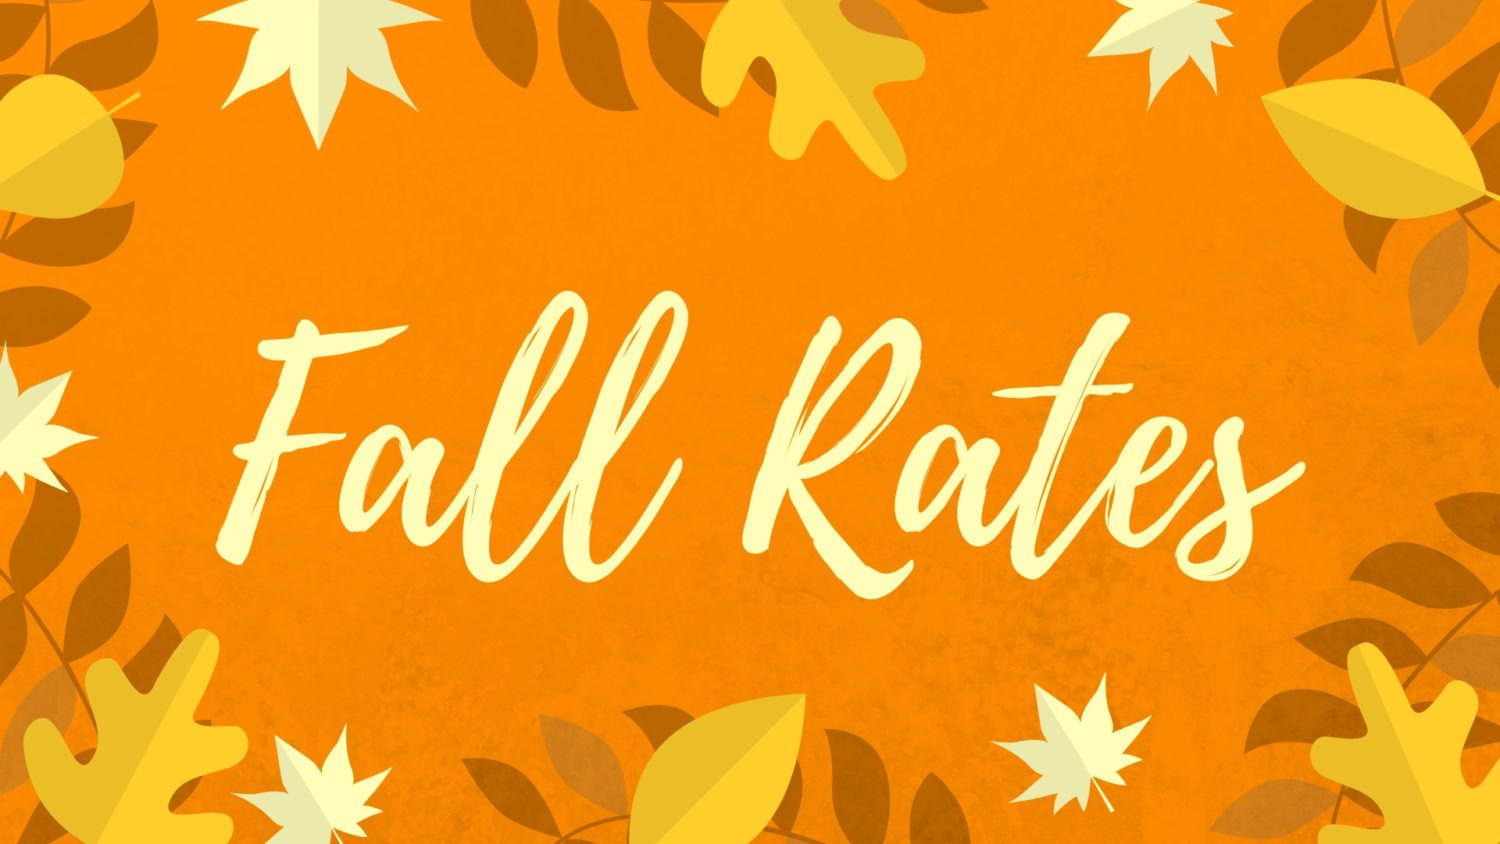 Check out our new Fall rates!